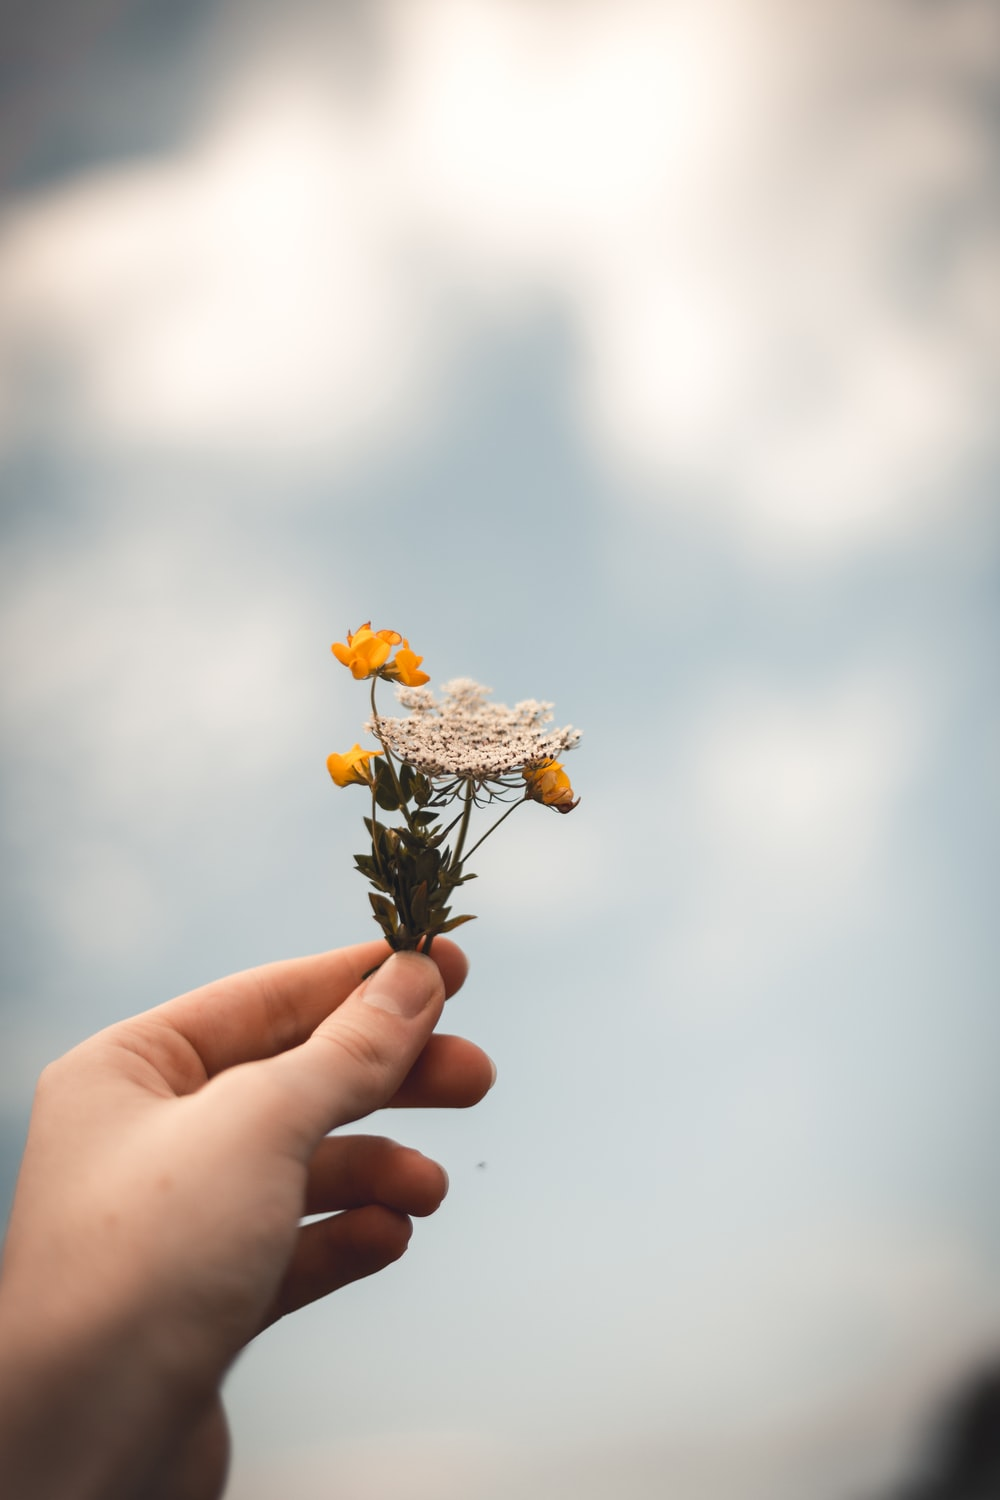 Flower pictures hd download free images on unsplash person holding flowers izmirmasajfo